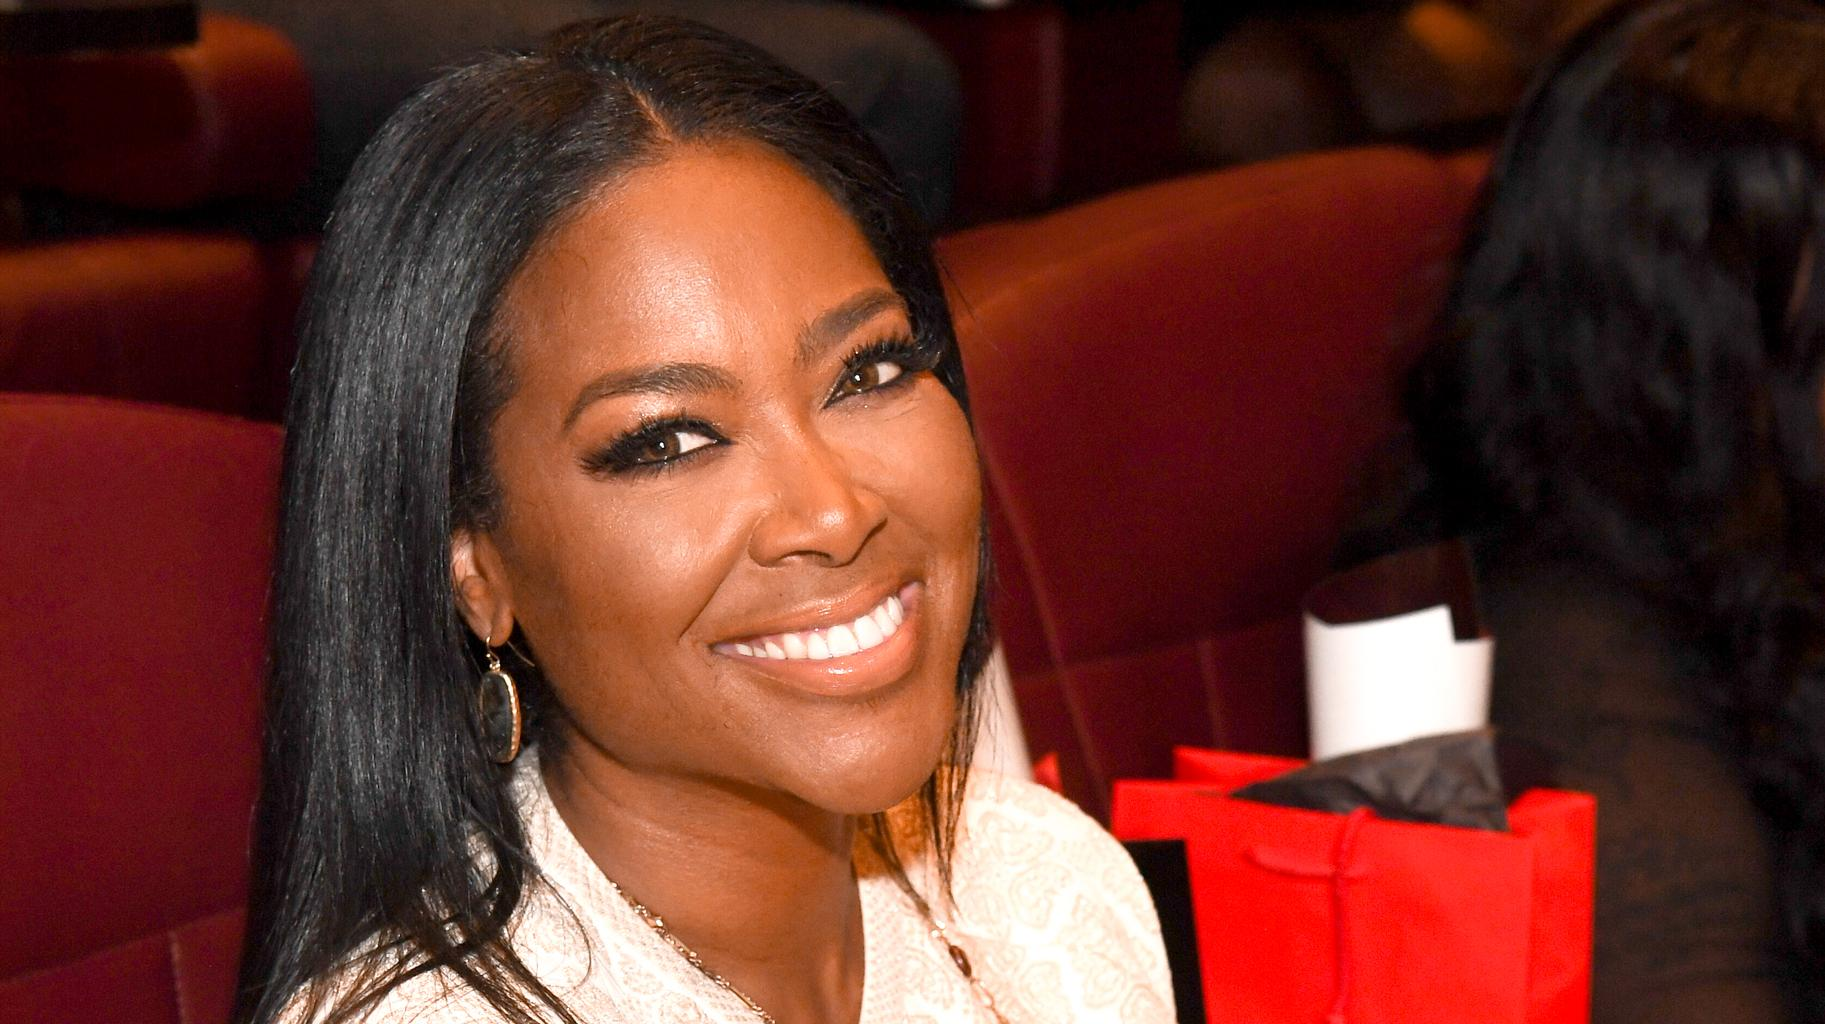 Kenya Moore's Latest Video With Baby Brooklyn Shows The Baby Girl Getting Excited When She Hears The Word 'Mommy' - Watch It Here